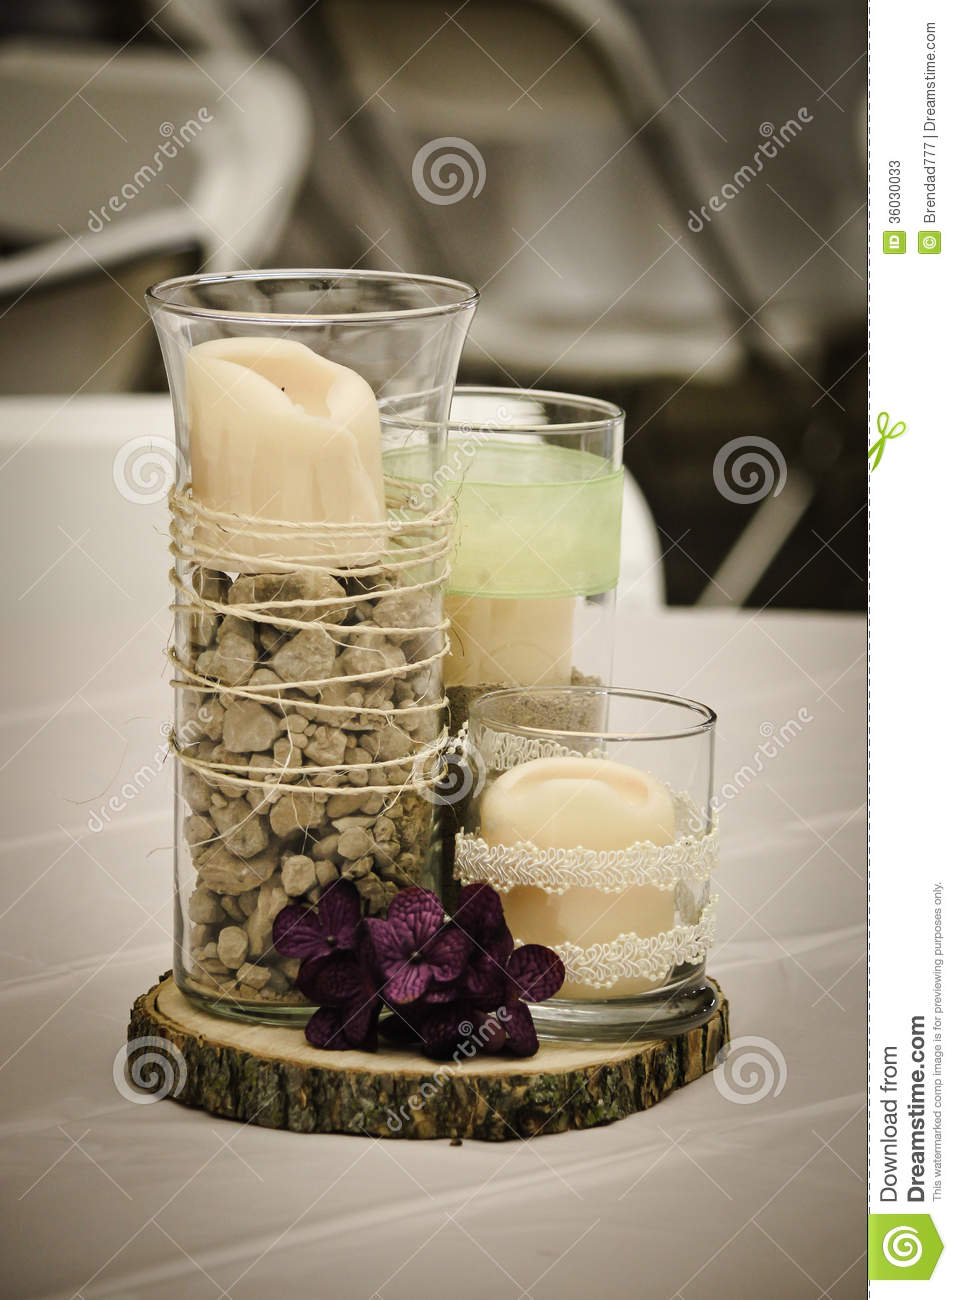 Rustic Centerpiece Stock Photos Image 36030033